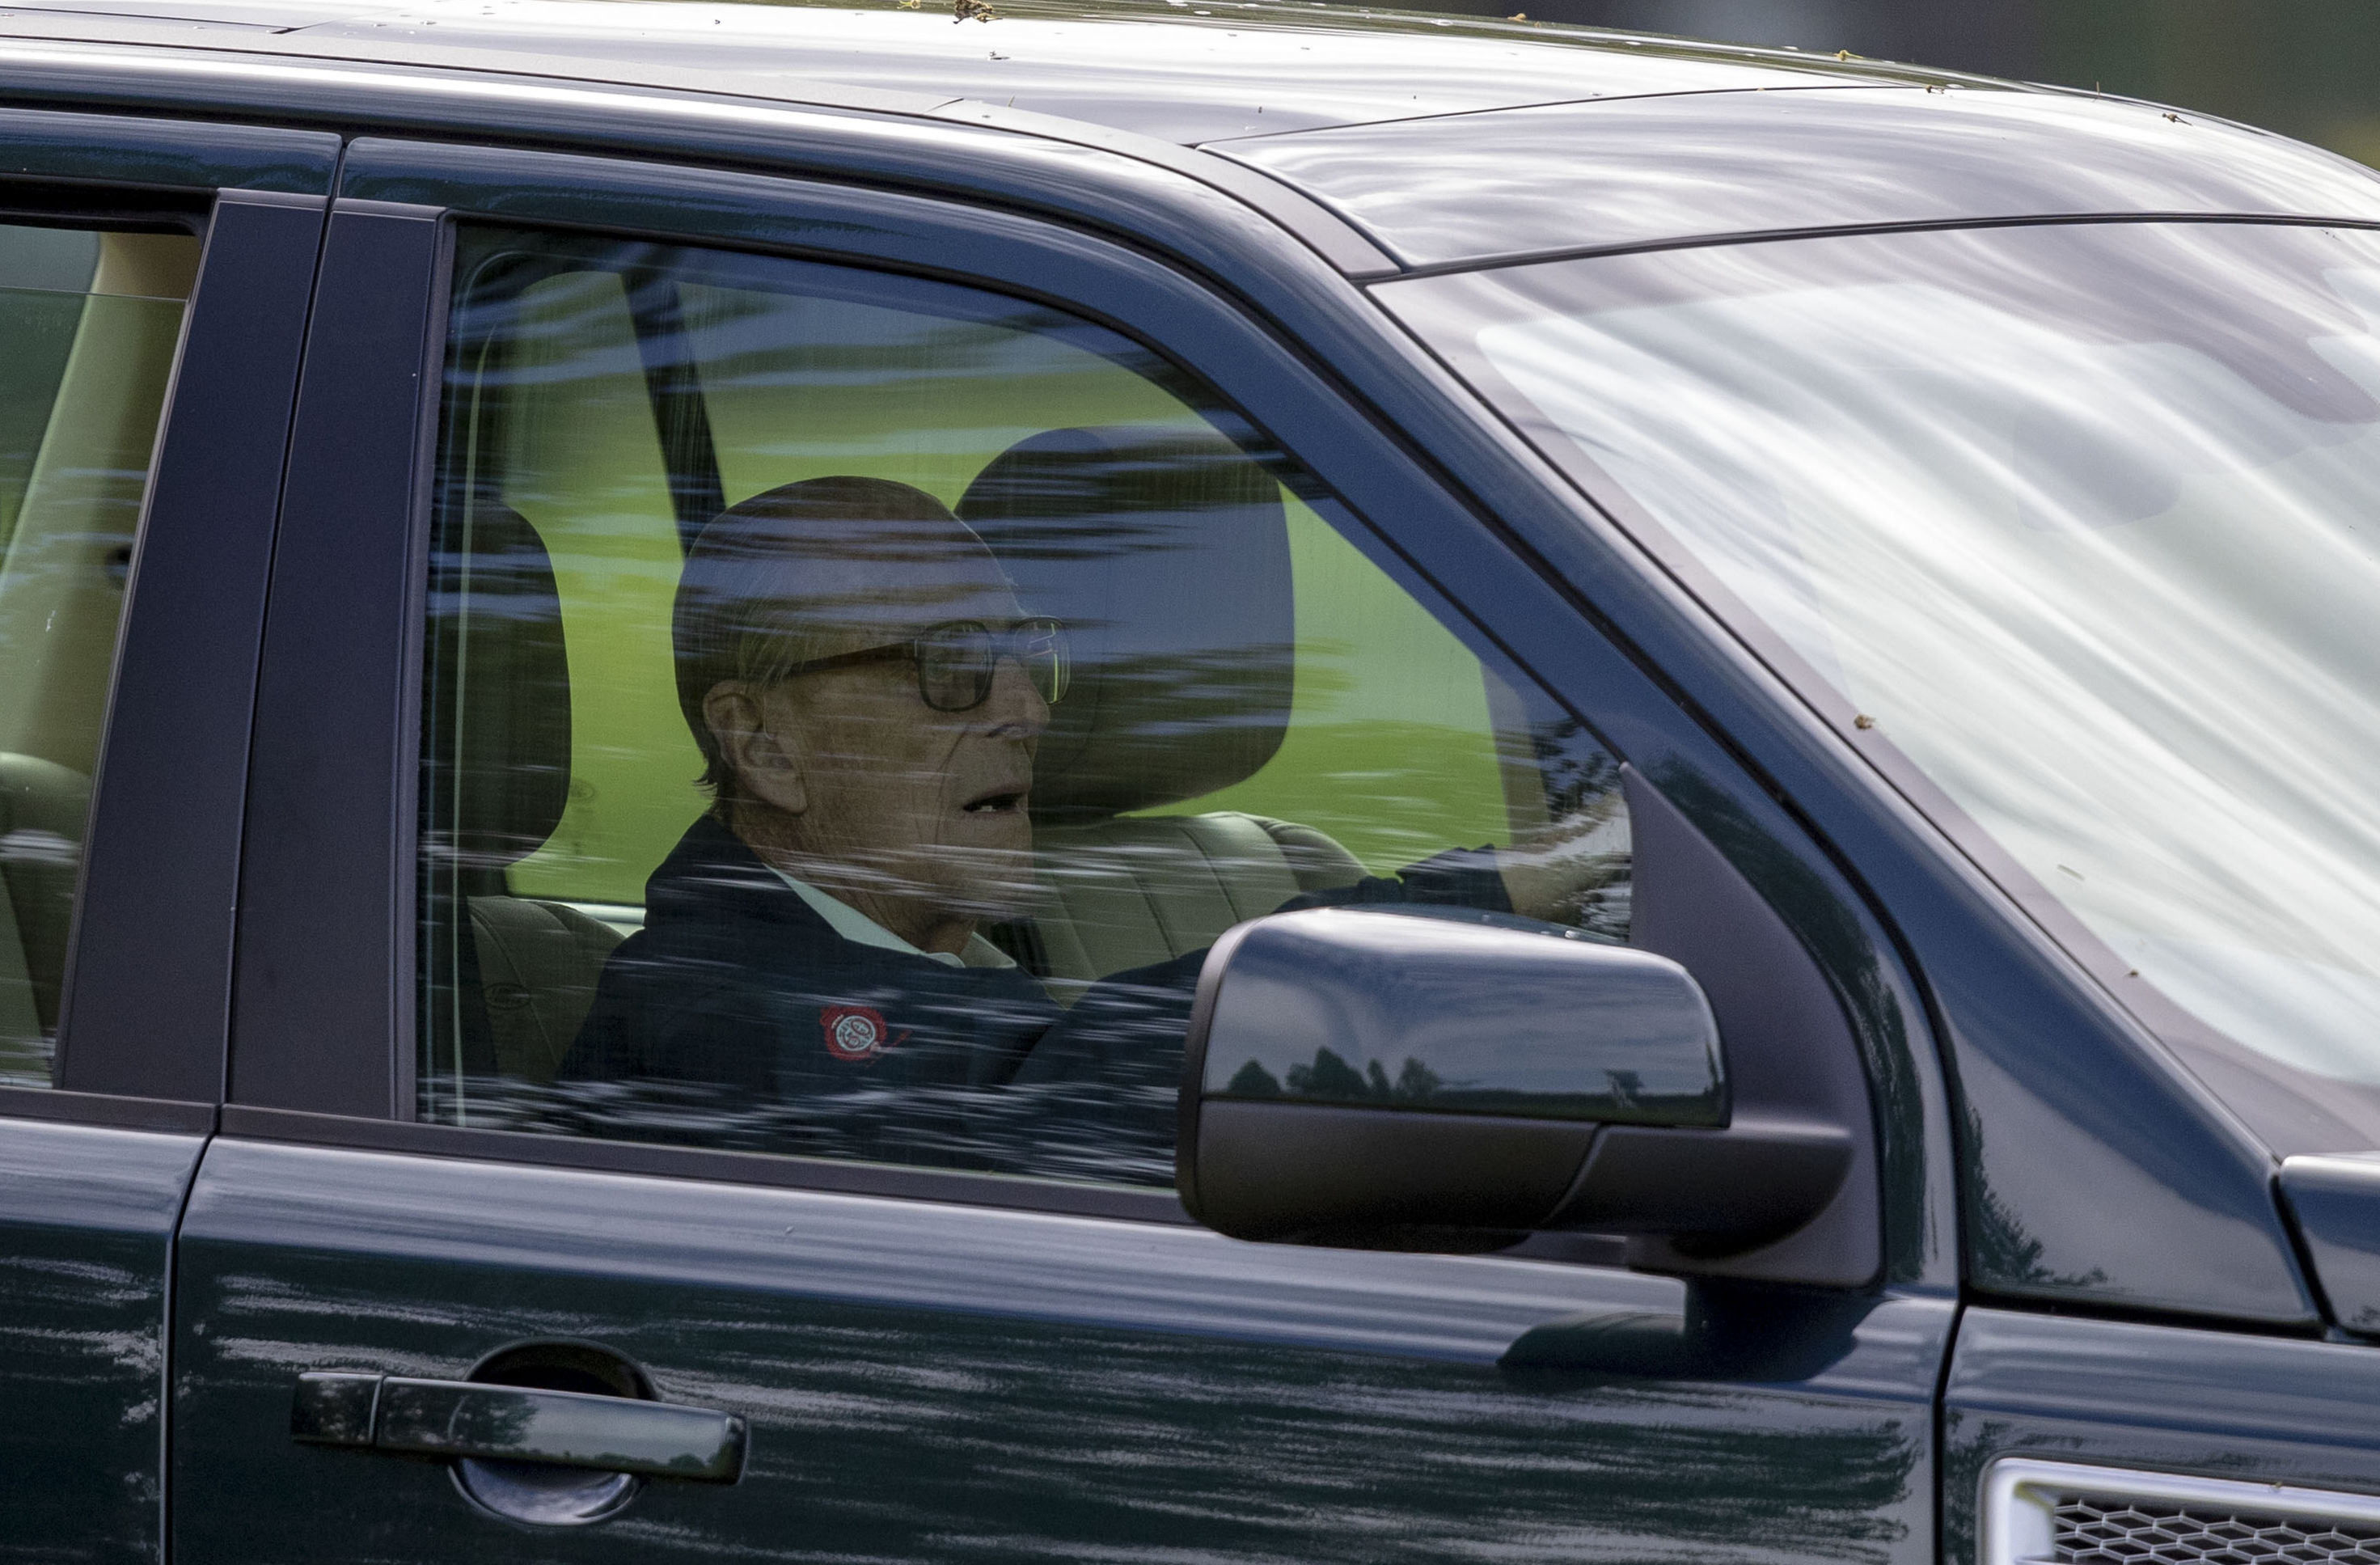 "The Duke of Edinburgh, 97, was left ""very shocked"" and shaken when the Land Rover Discovery he was driving was hit by a Kia as he drove near the Queen's Sandringham estate."